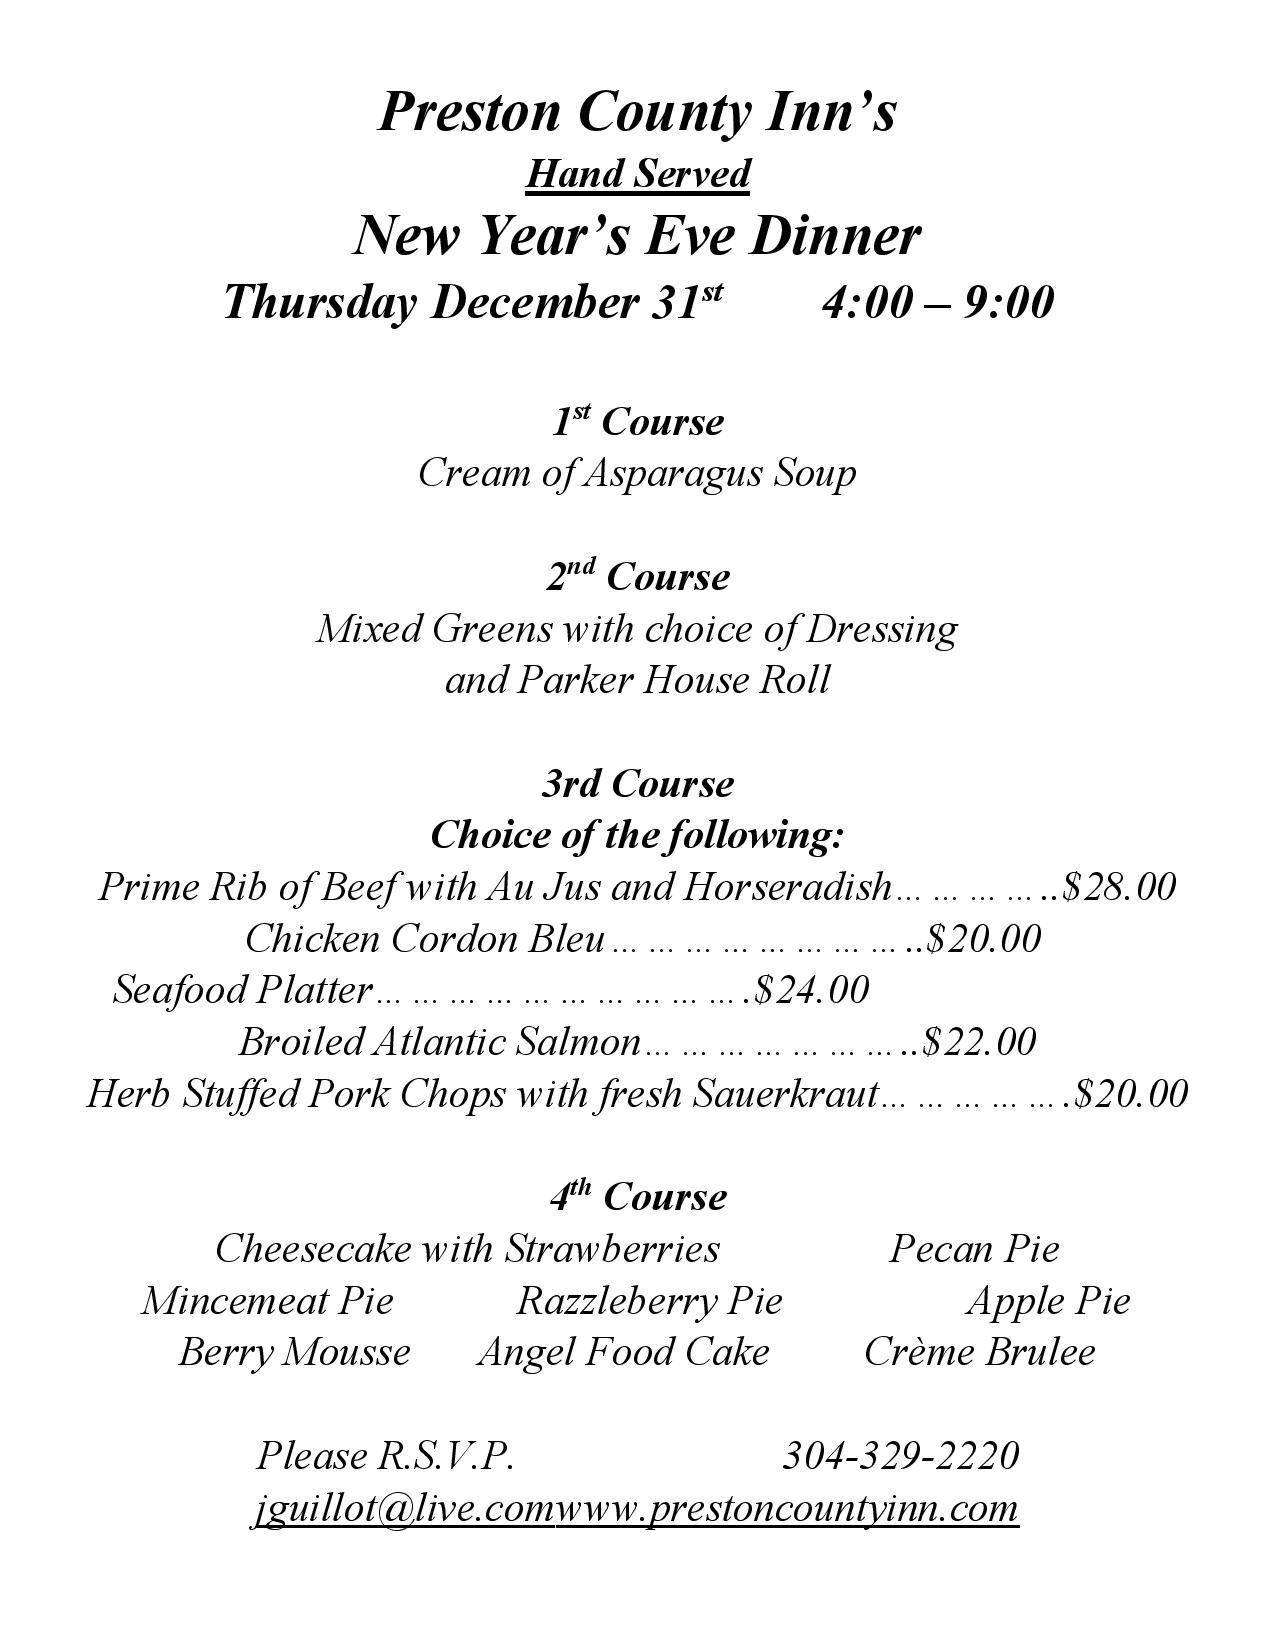 New Year's Eve dinner 2020